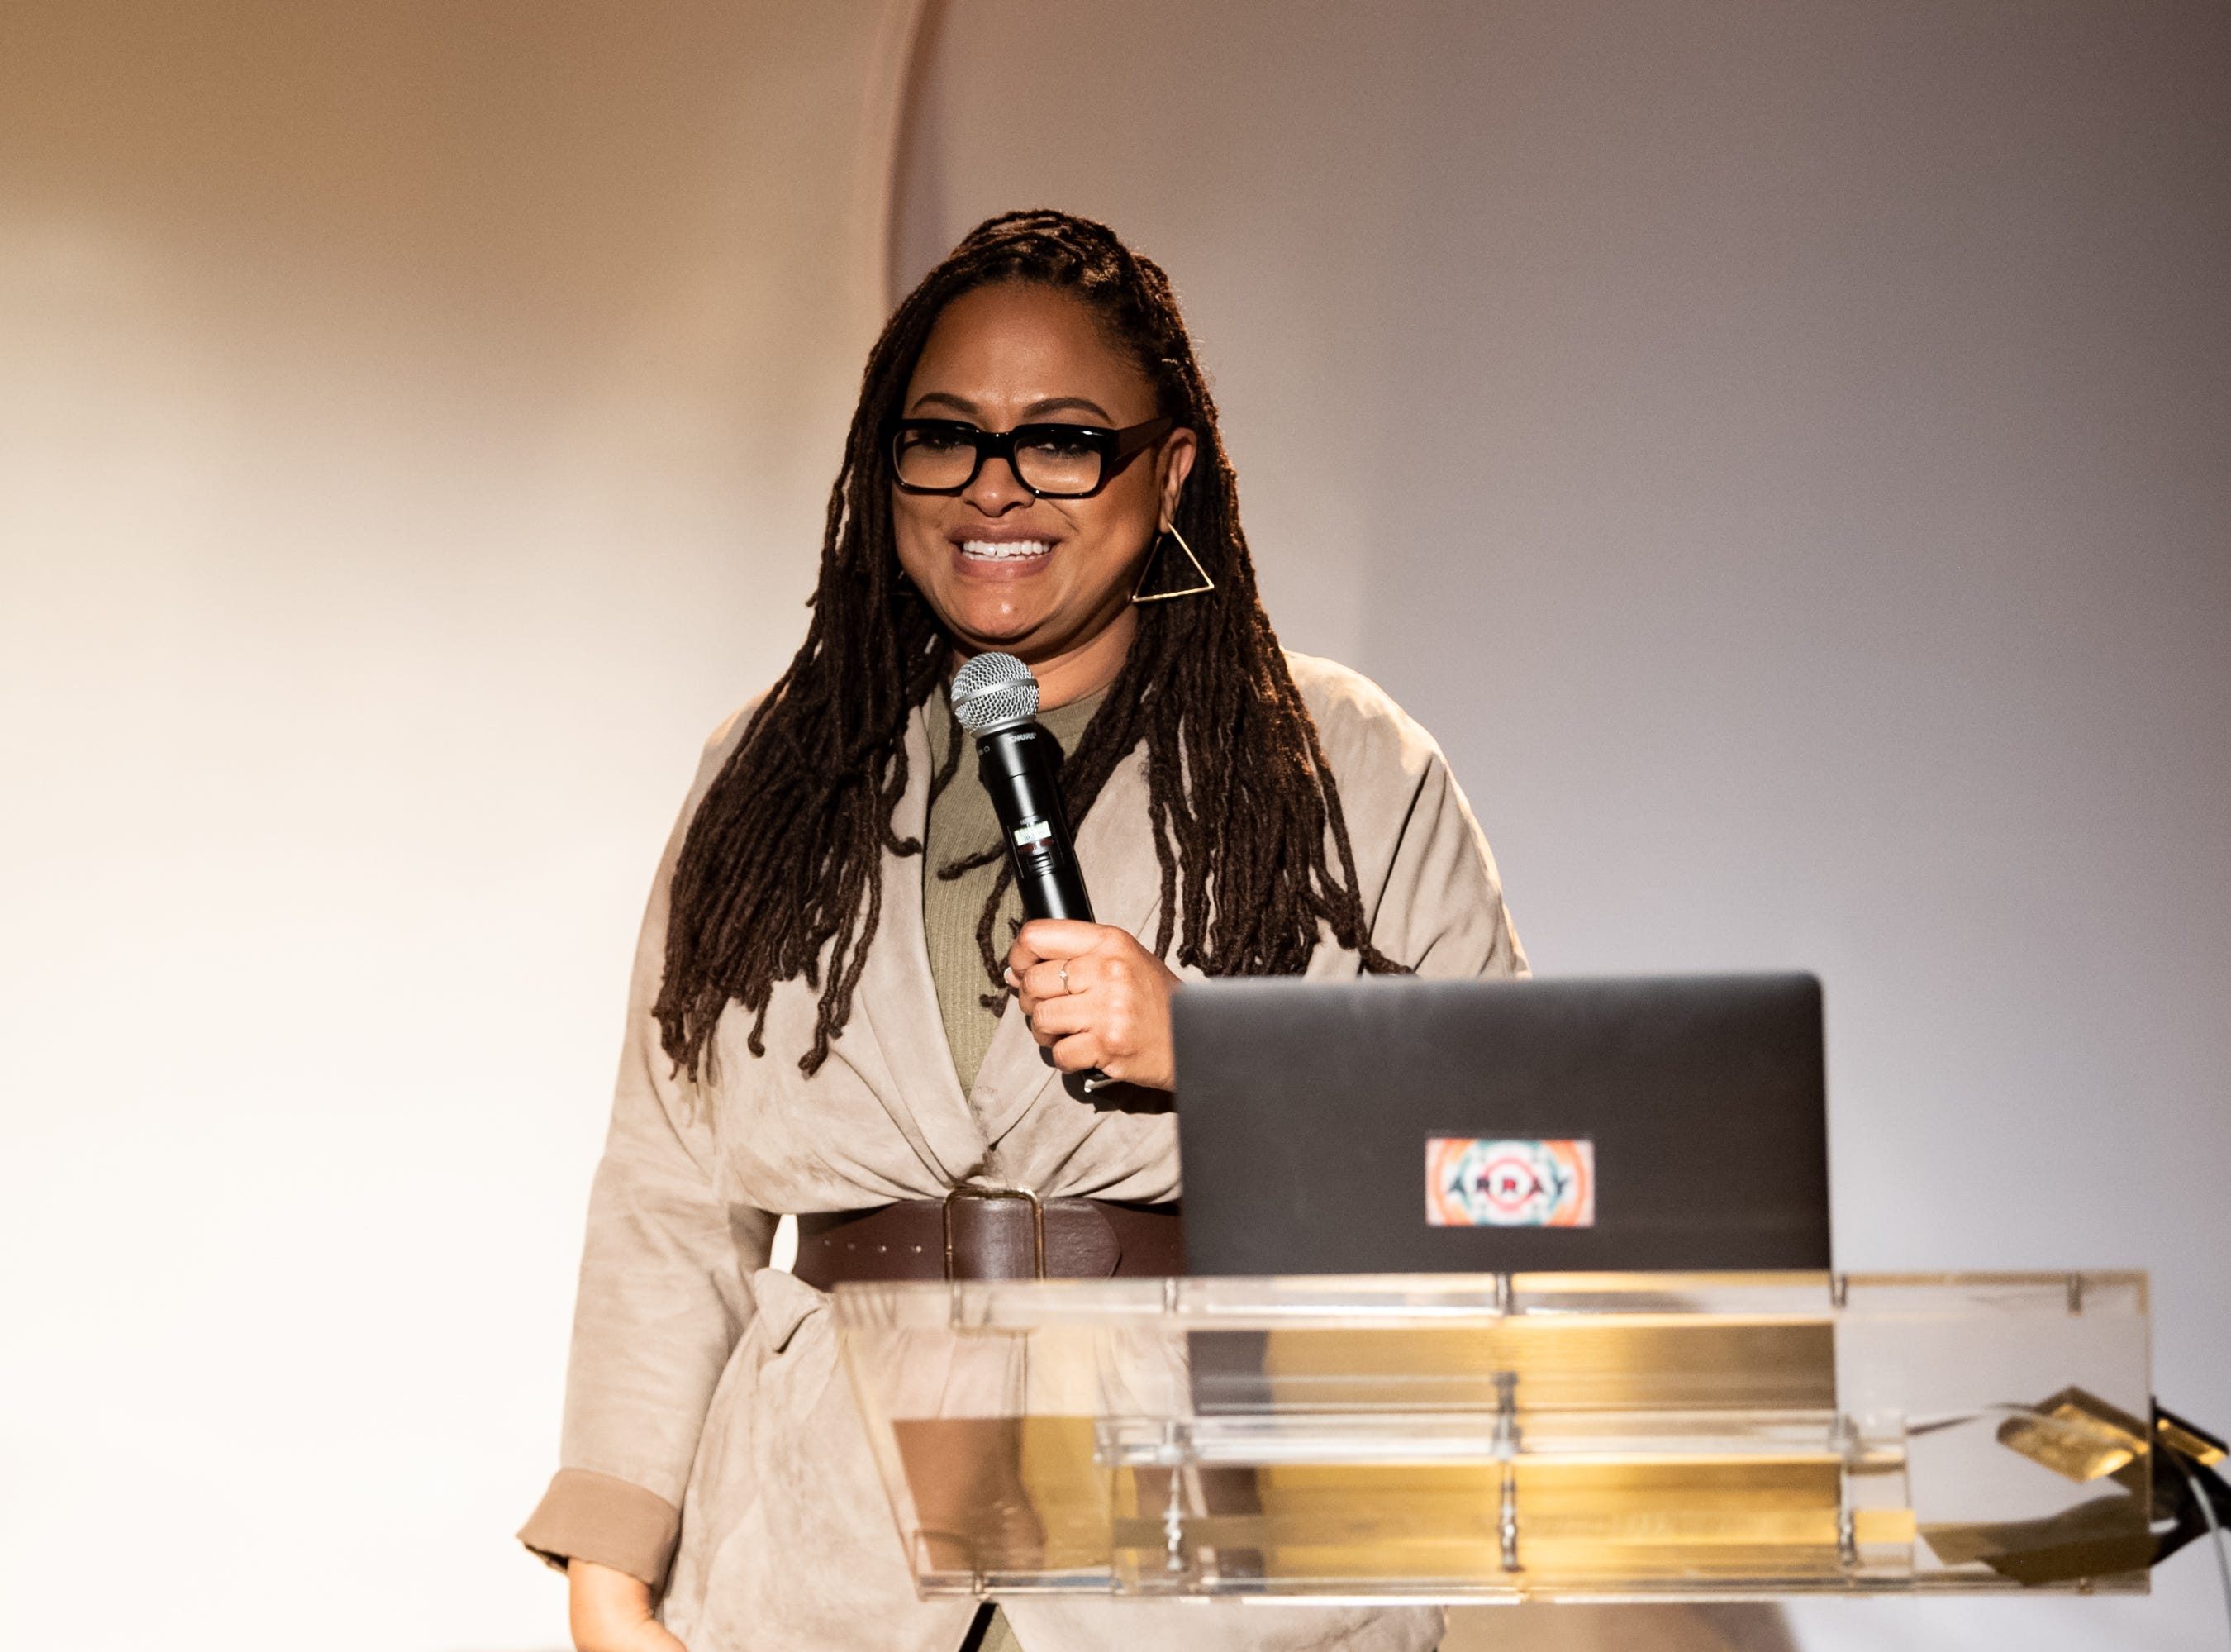 LOS ANGELES, CALIFORNIA - JANUARY 22: Ava Duvernay attends the 3rd annual National Day of Racial Healing at Array on January 22, 2019 in Los Angeles, California. (Photo by Emma McIntyre/Getty Images) ORG XMIT: 775286570 ORIG FILE ID: 1098152712